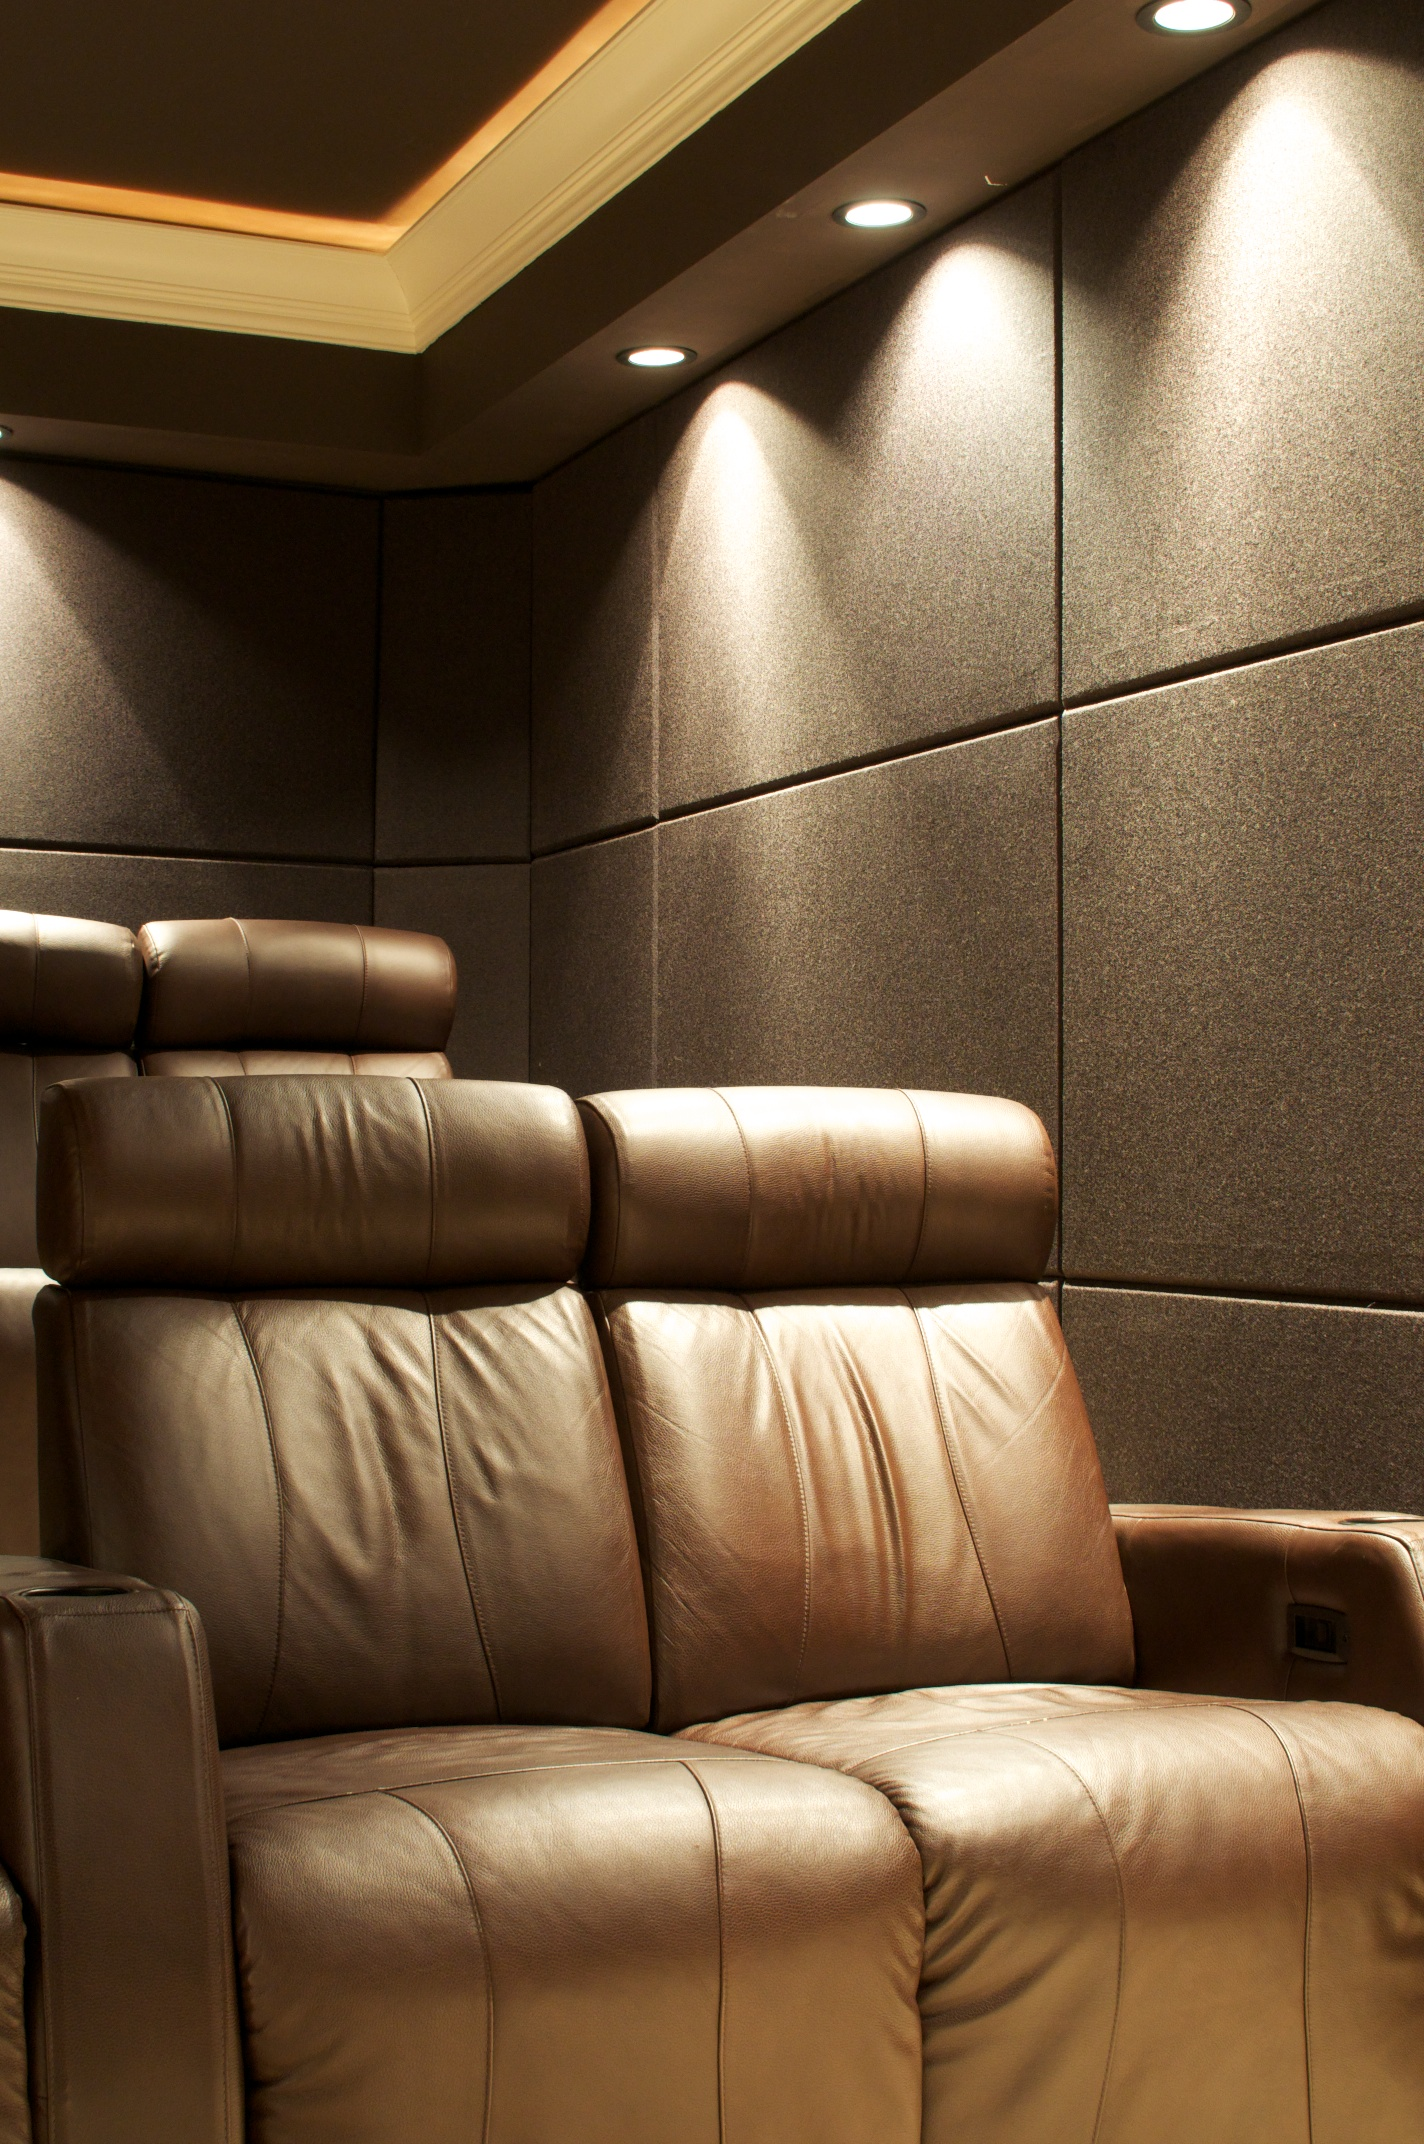 Home Theater Room Acoustic Design Tips  home theater acoustic room designHome Theater Room Acoustic Design Tips   Carlton Bale  com. Designing A Home Theater. Home Design Ideas